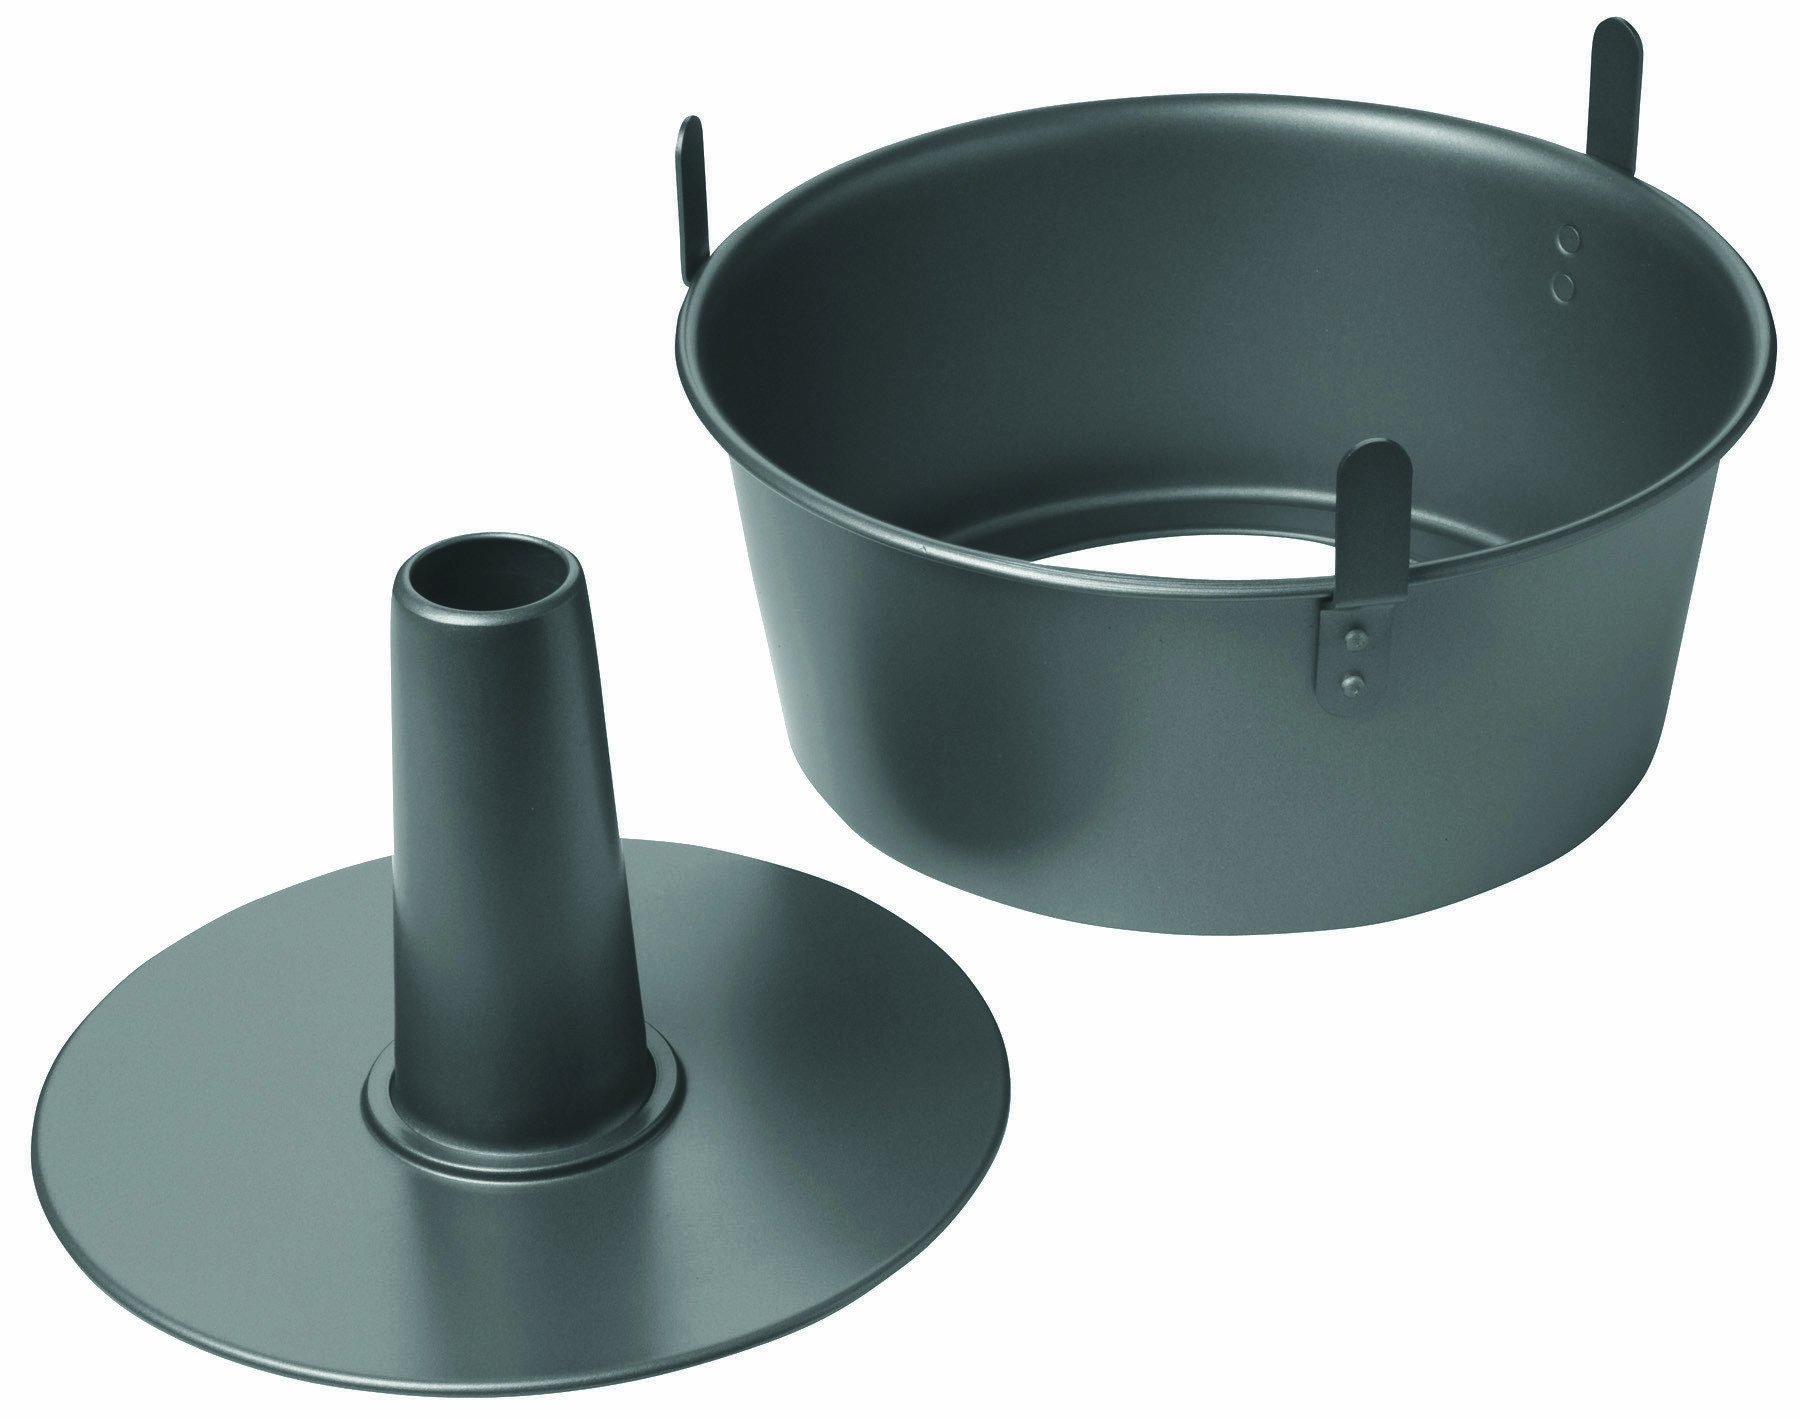 Chicago Metallic 16184 Professional 2-Piece 9.5-Inch Angel Food Cake Pan with Feet, 9.5'' x 4'', Black by Chicago Metallic